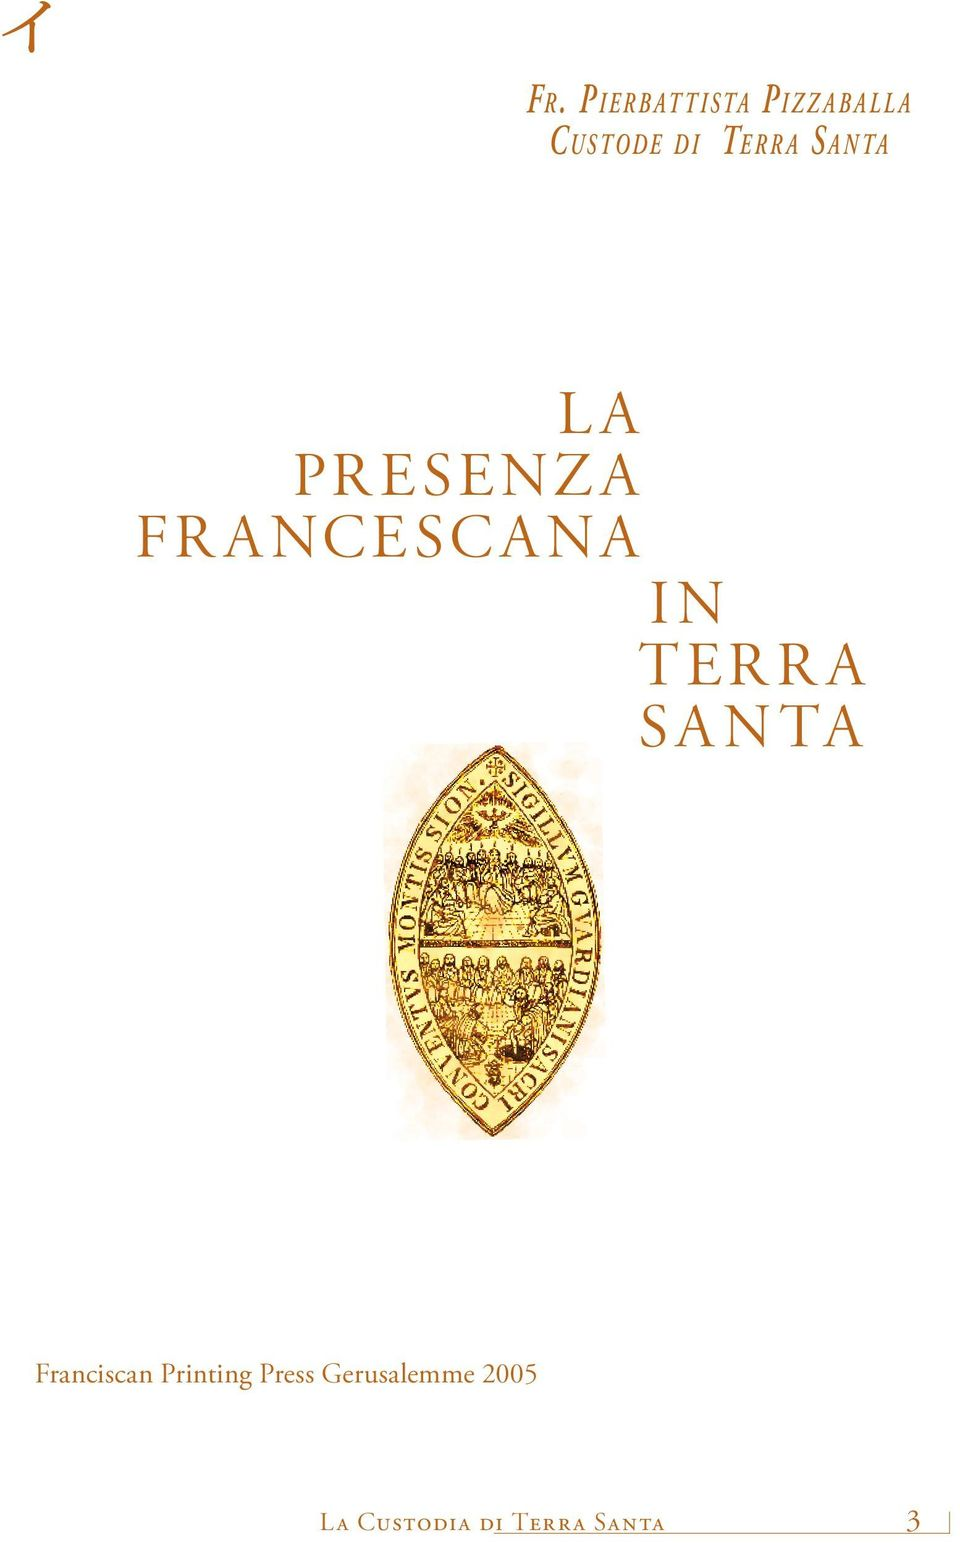 TERRA SANTA Franciscan Printing Press